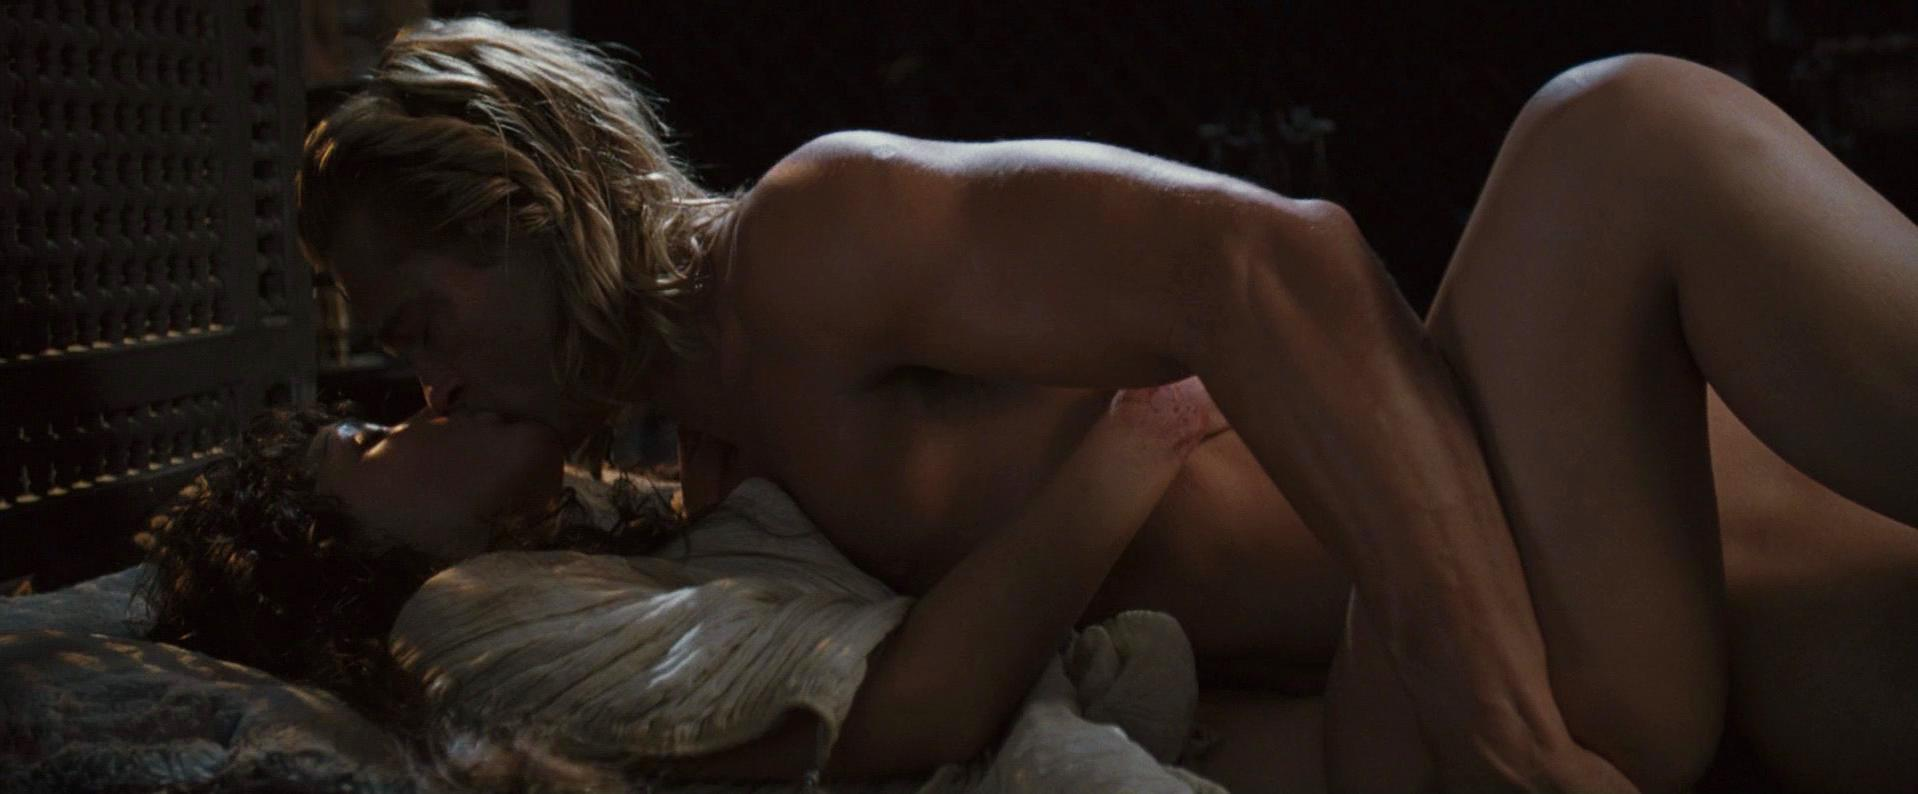 rose-byrne-nude-troy